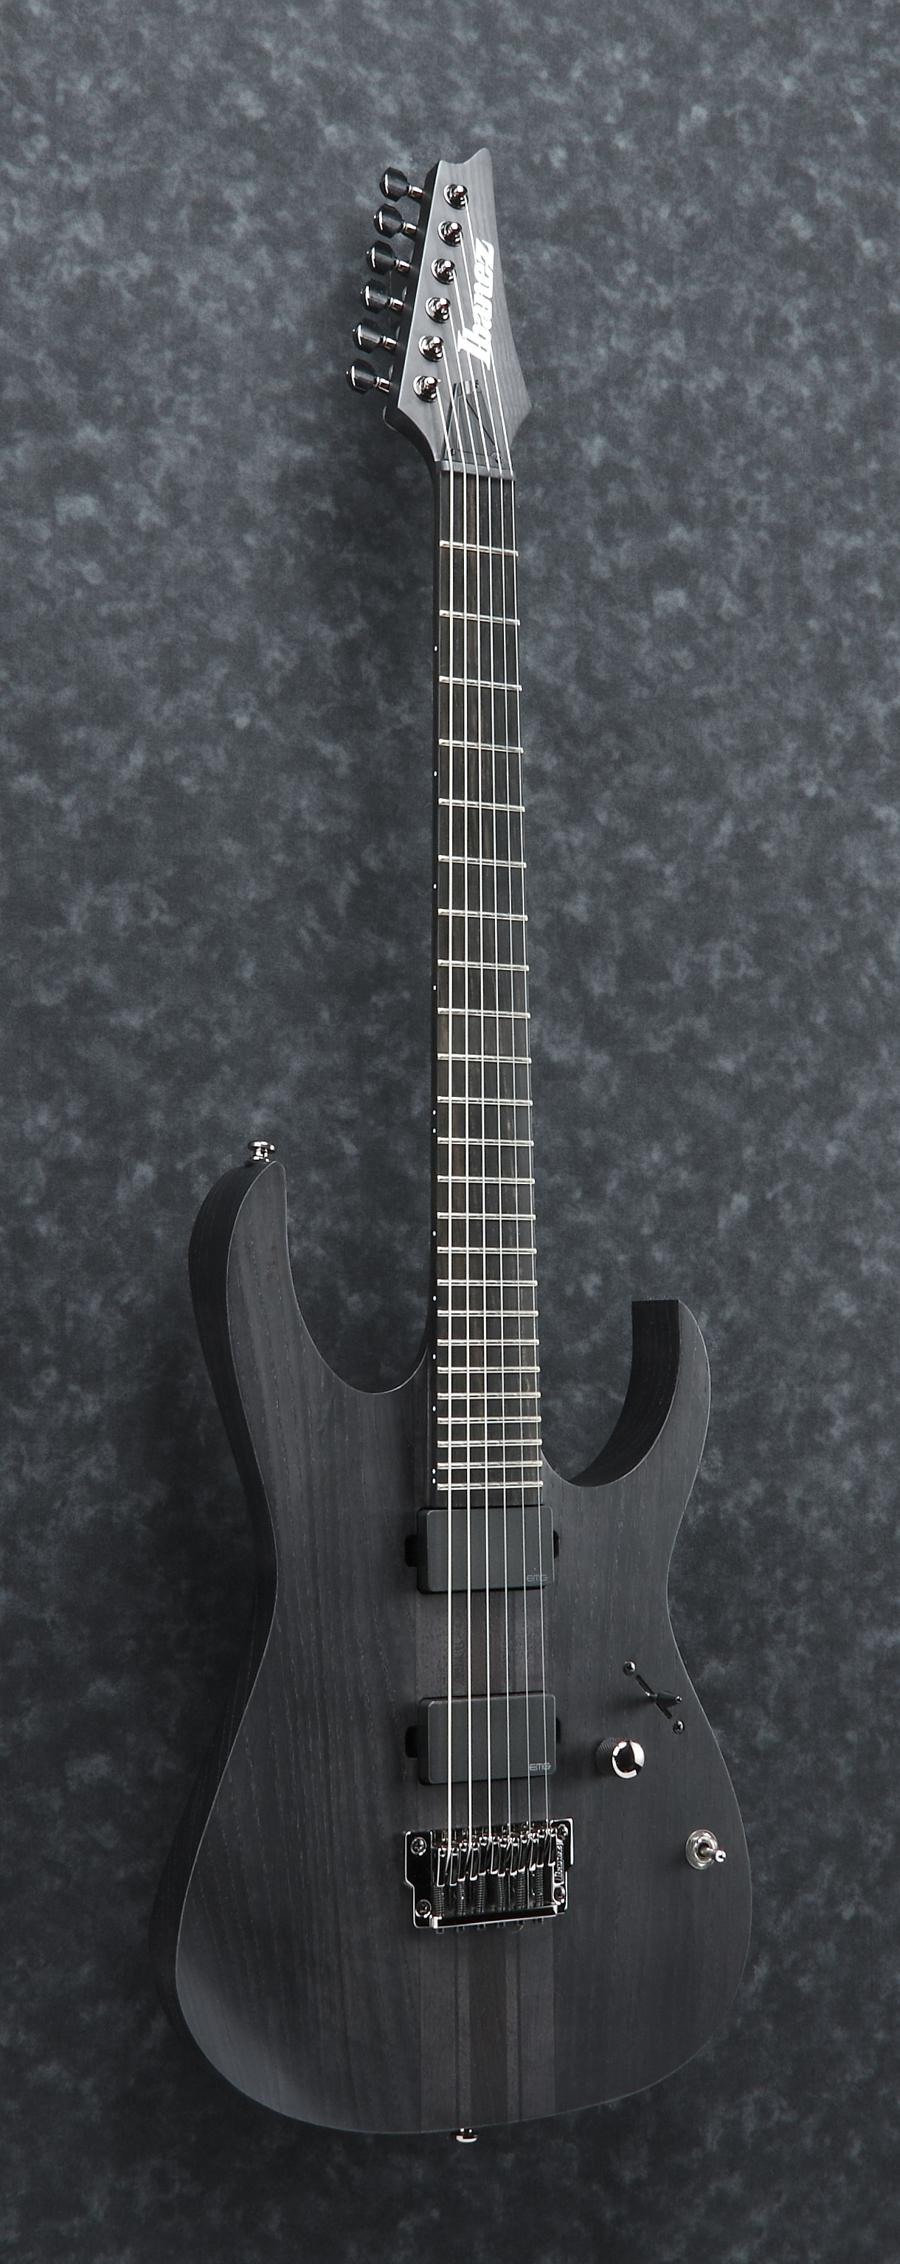 Ibanez RGIT20FE-TGF RG Iron Label Series 6 String Electric Guitar in ...